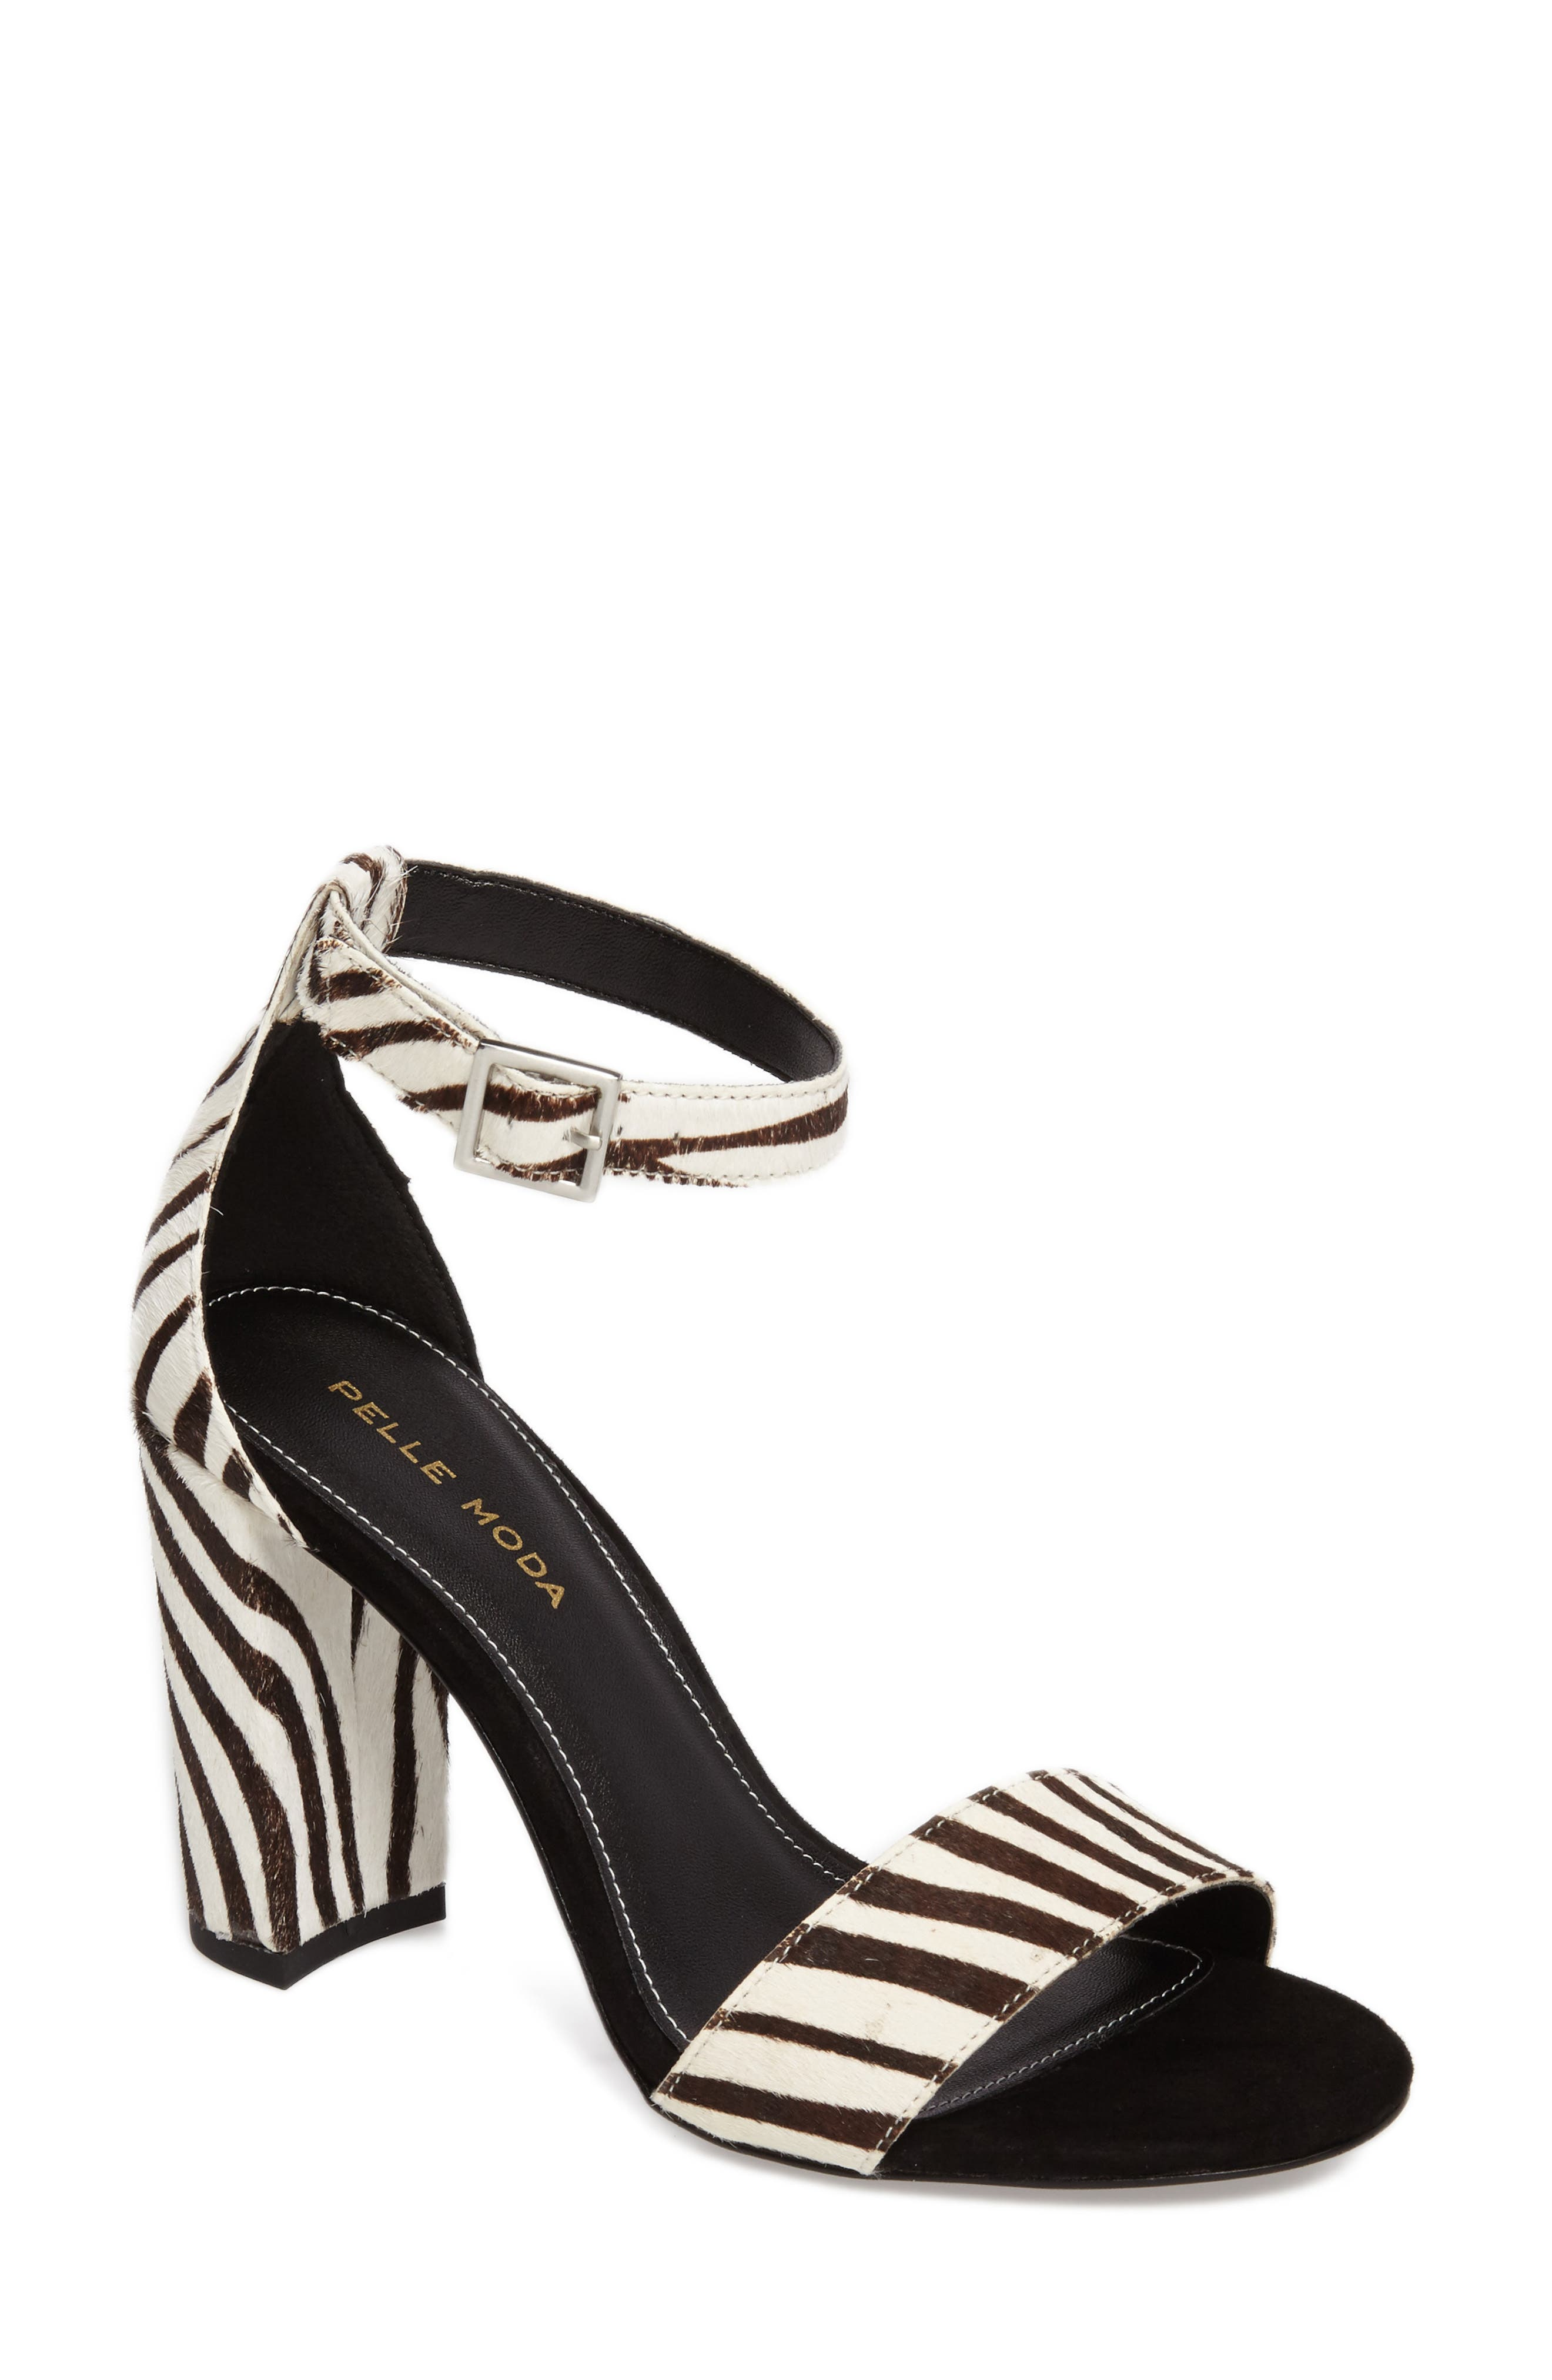 'Bonnie' Ankle Strap Sandal,                         Main,                         color, Zebra Print Calf Hair